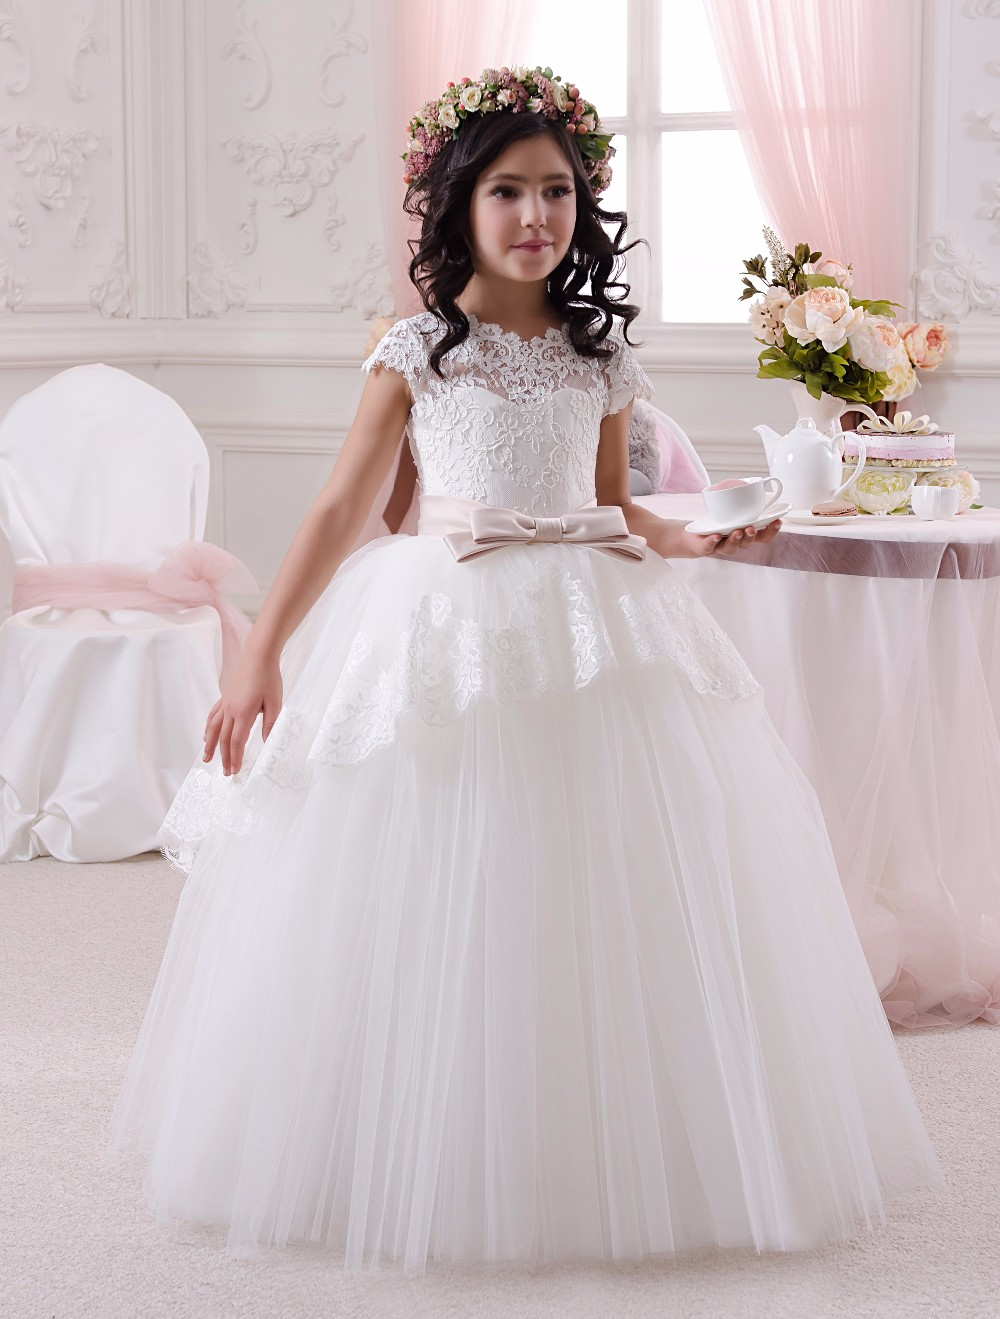 Flower Girl Dresses First Communion Dresses Girls Kids Ball Evening